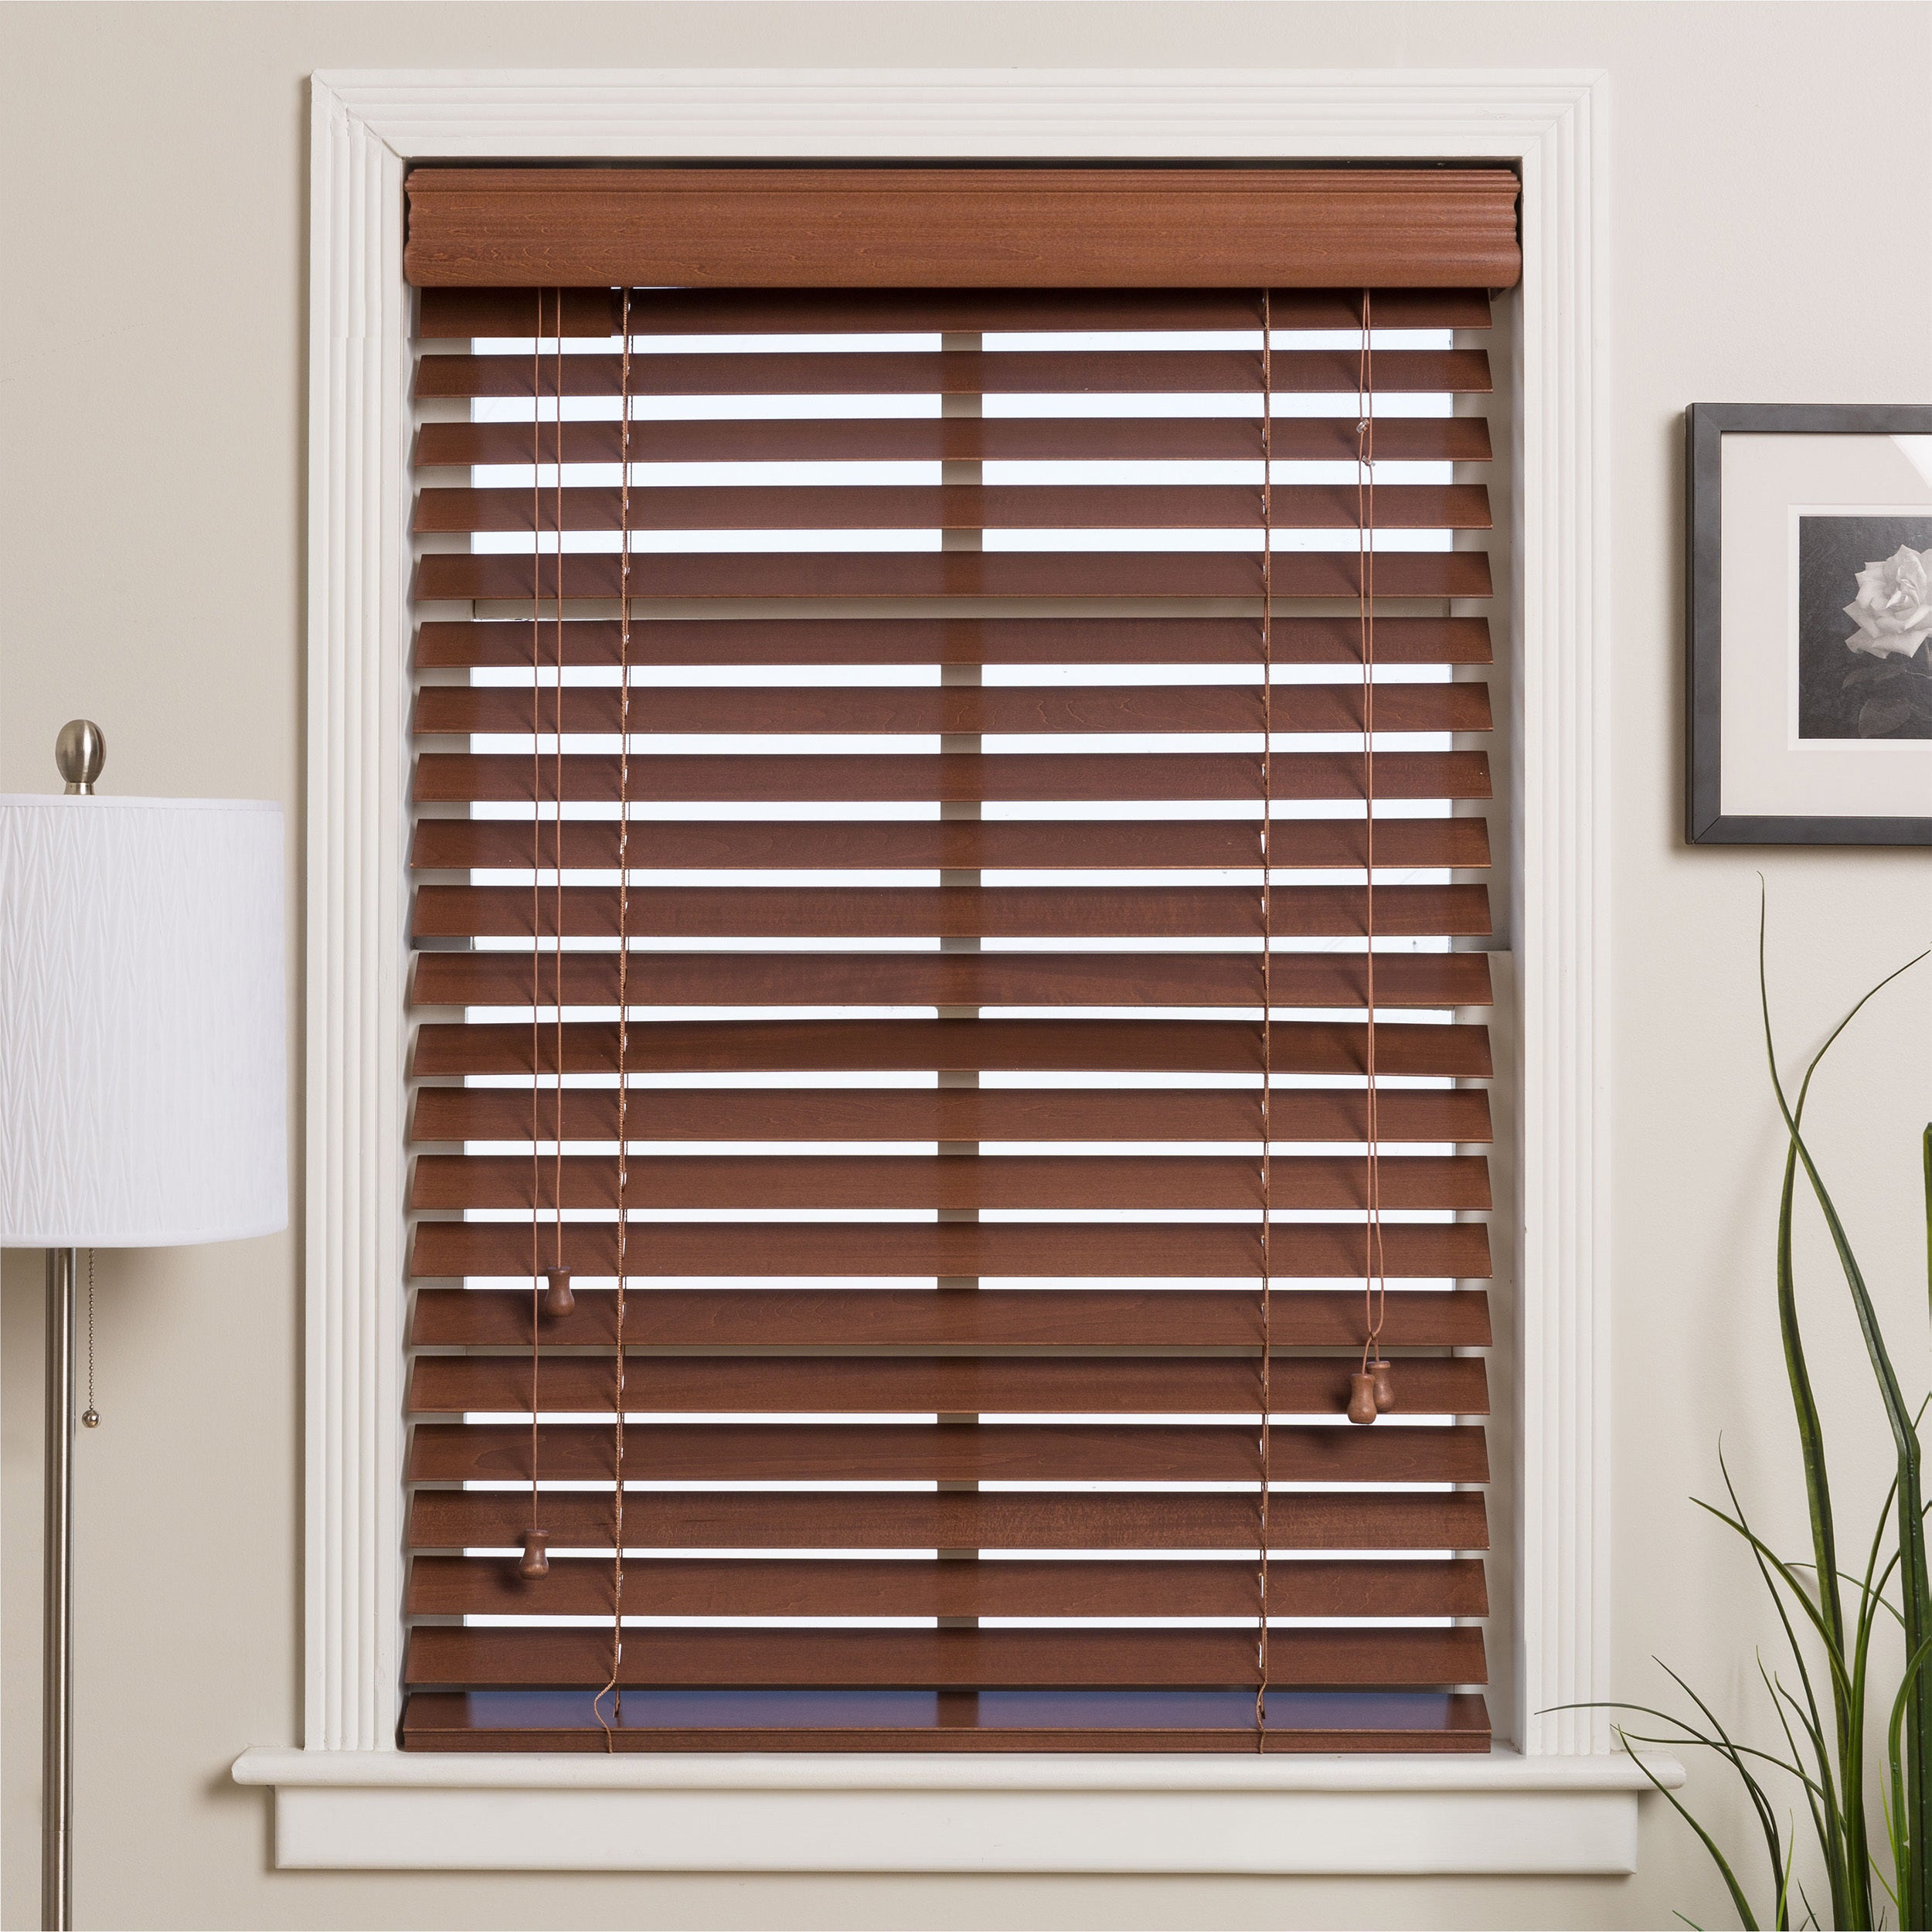 wood google pin right solution installations is blinds wooden cordless search treatments window blind